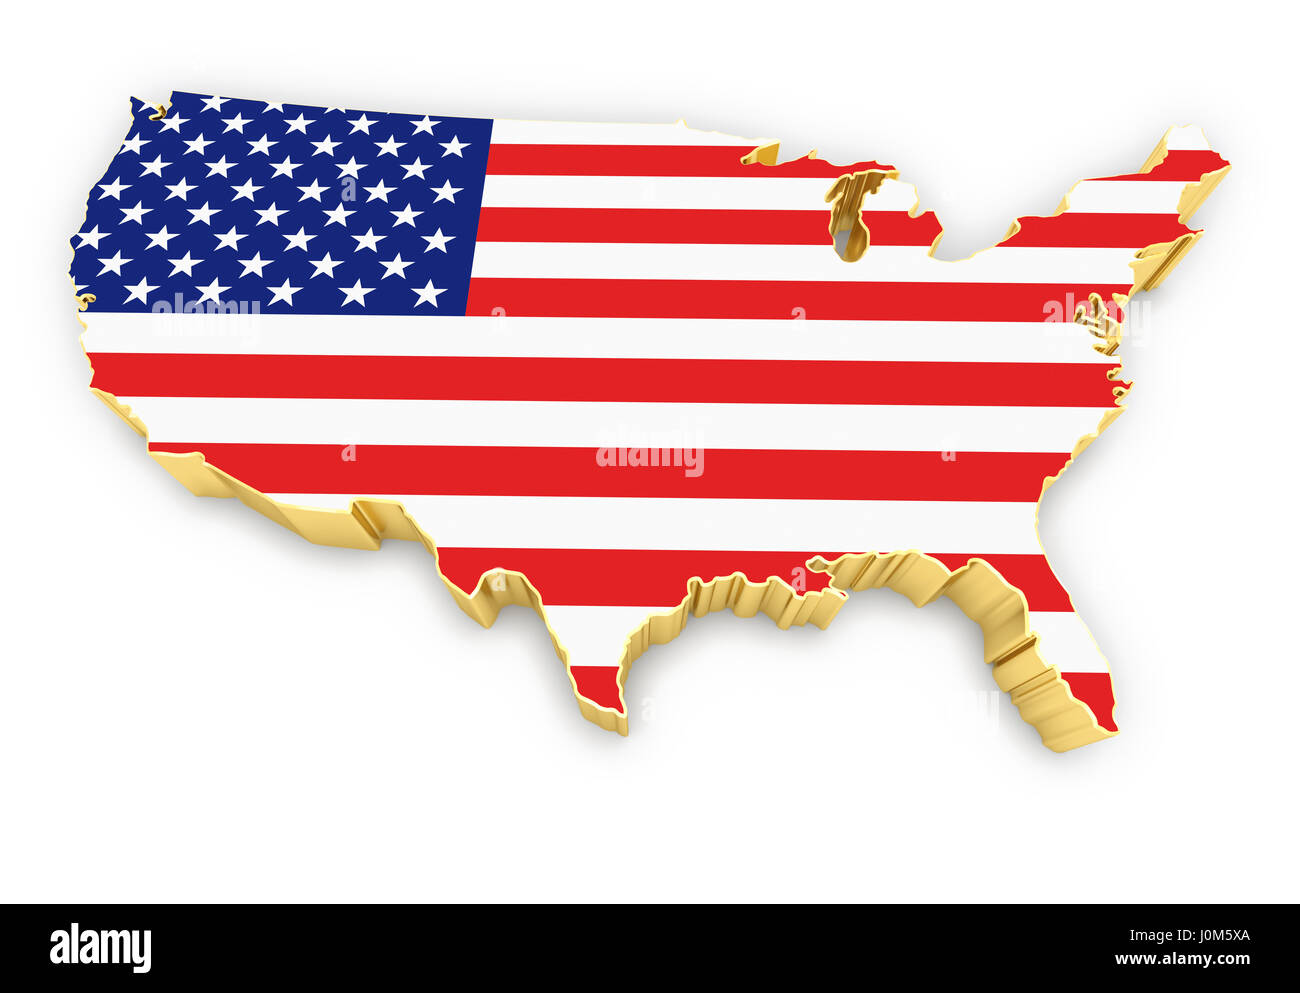 United States Of America High Resolution Rendered Golden Map Stock Photo Alamy